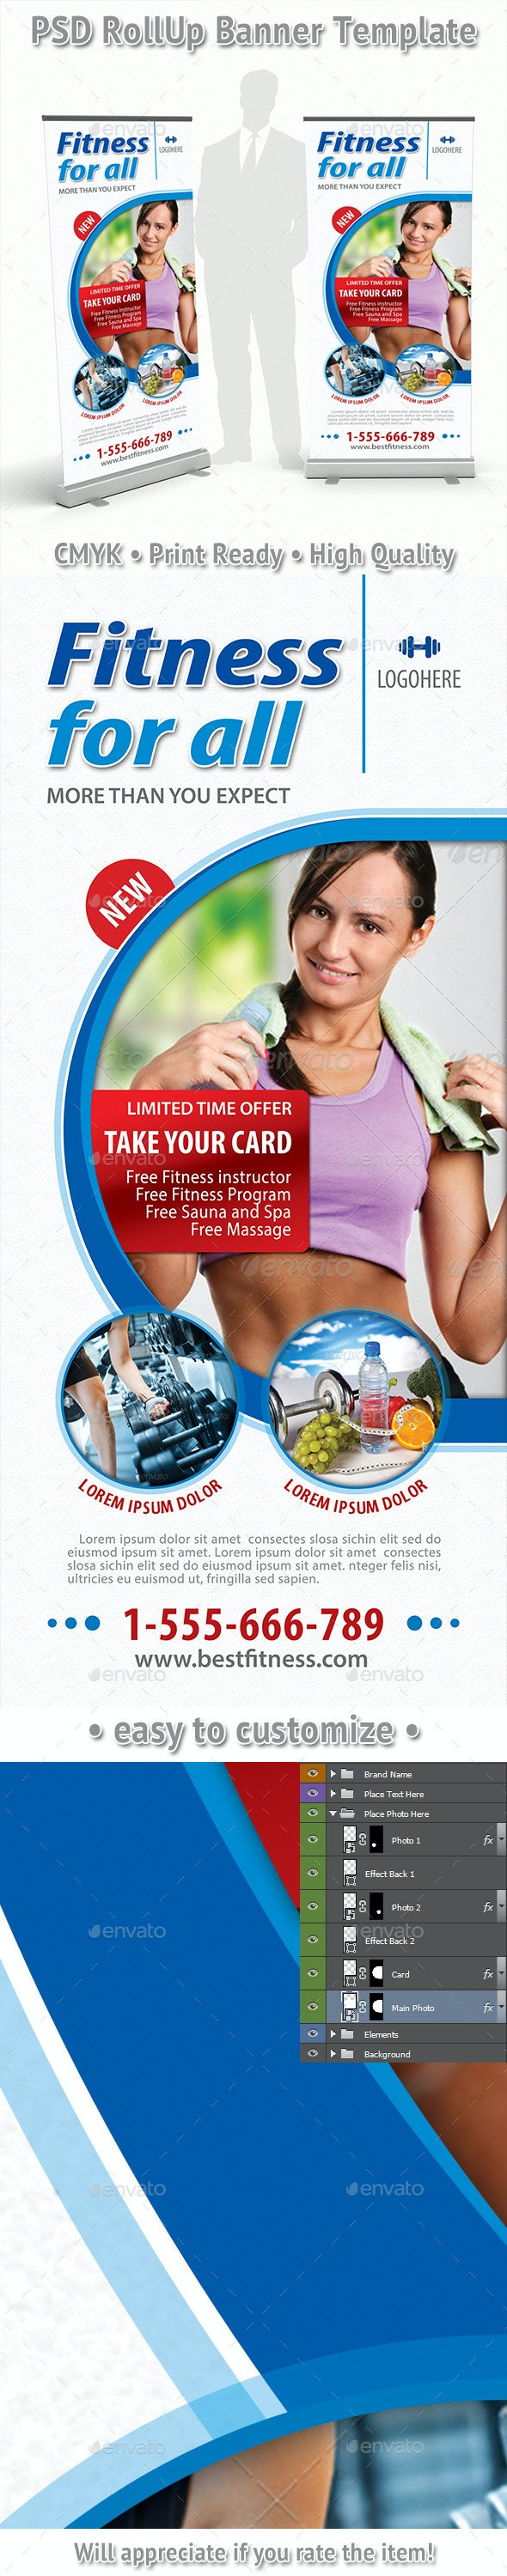 Fitness Program Rollup Banner 64 - Signage Print Templates